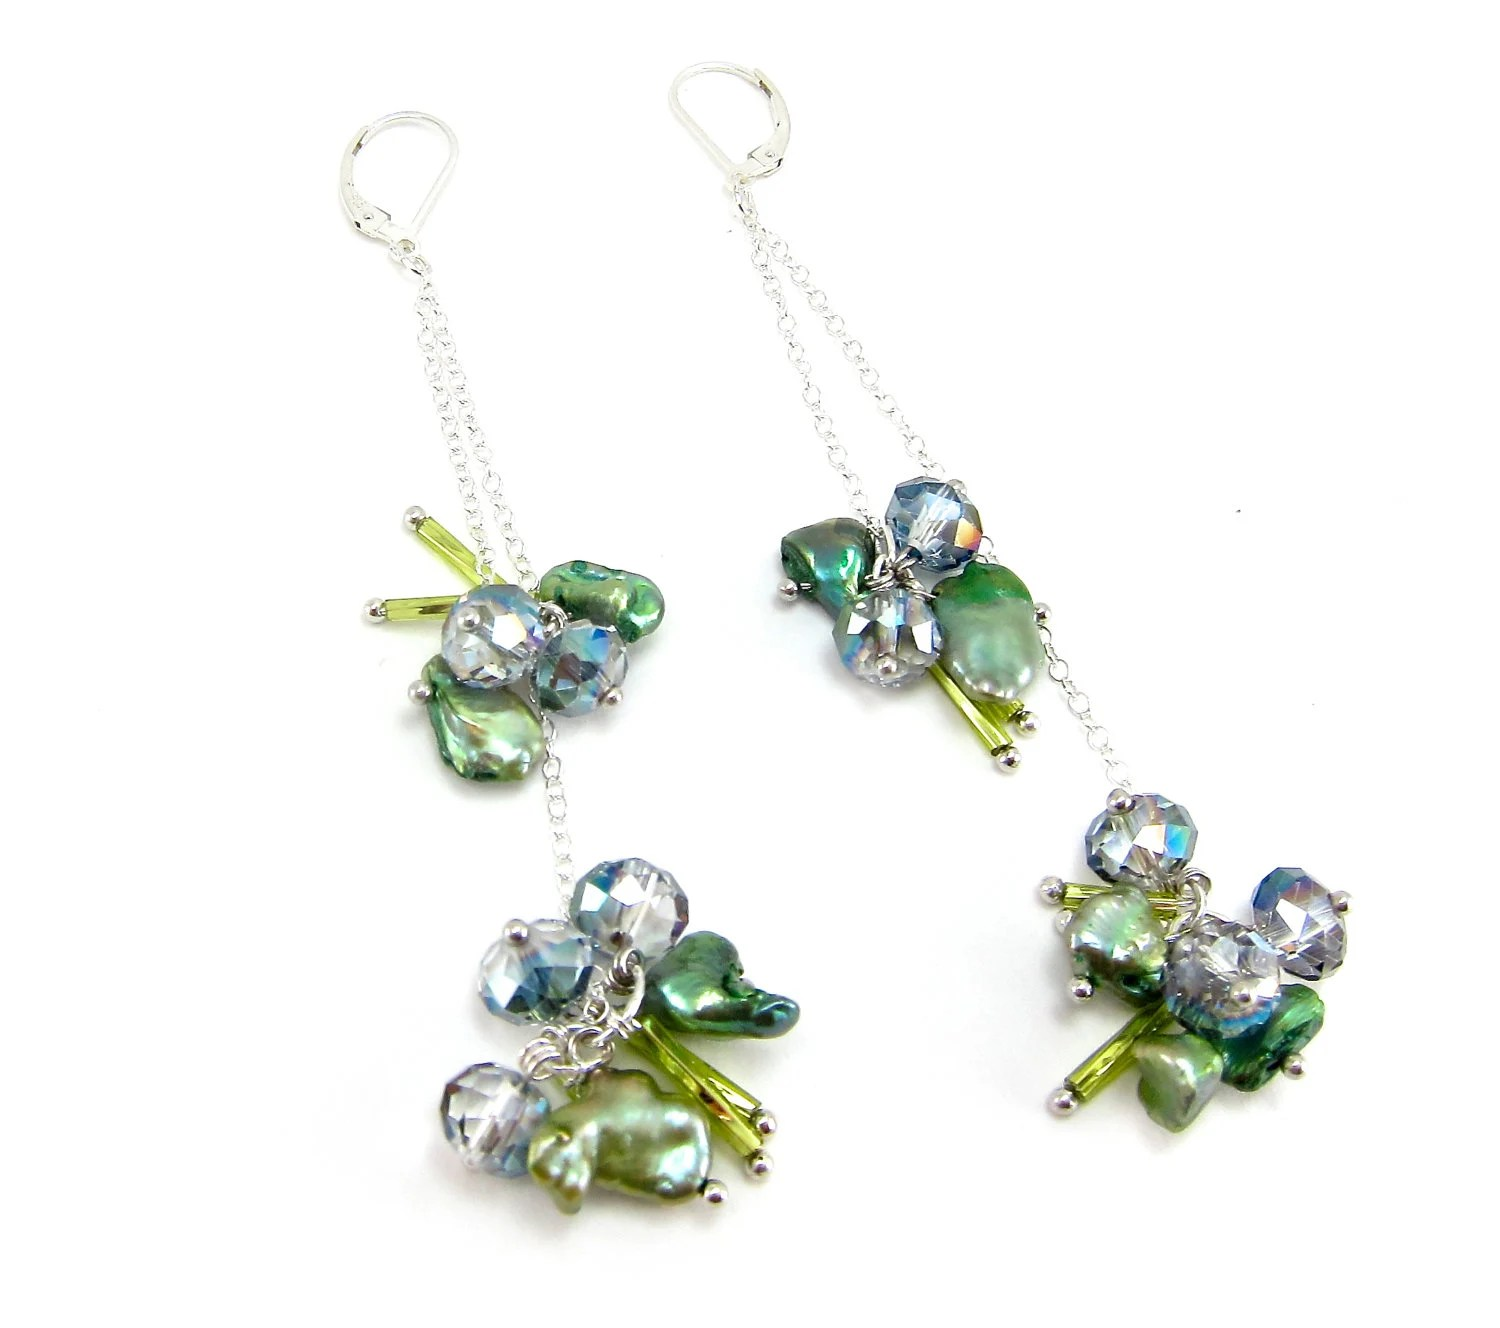 Shady Lady Pearl and Crystal Earrings - Alex L Designs - Handmade in the USA